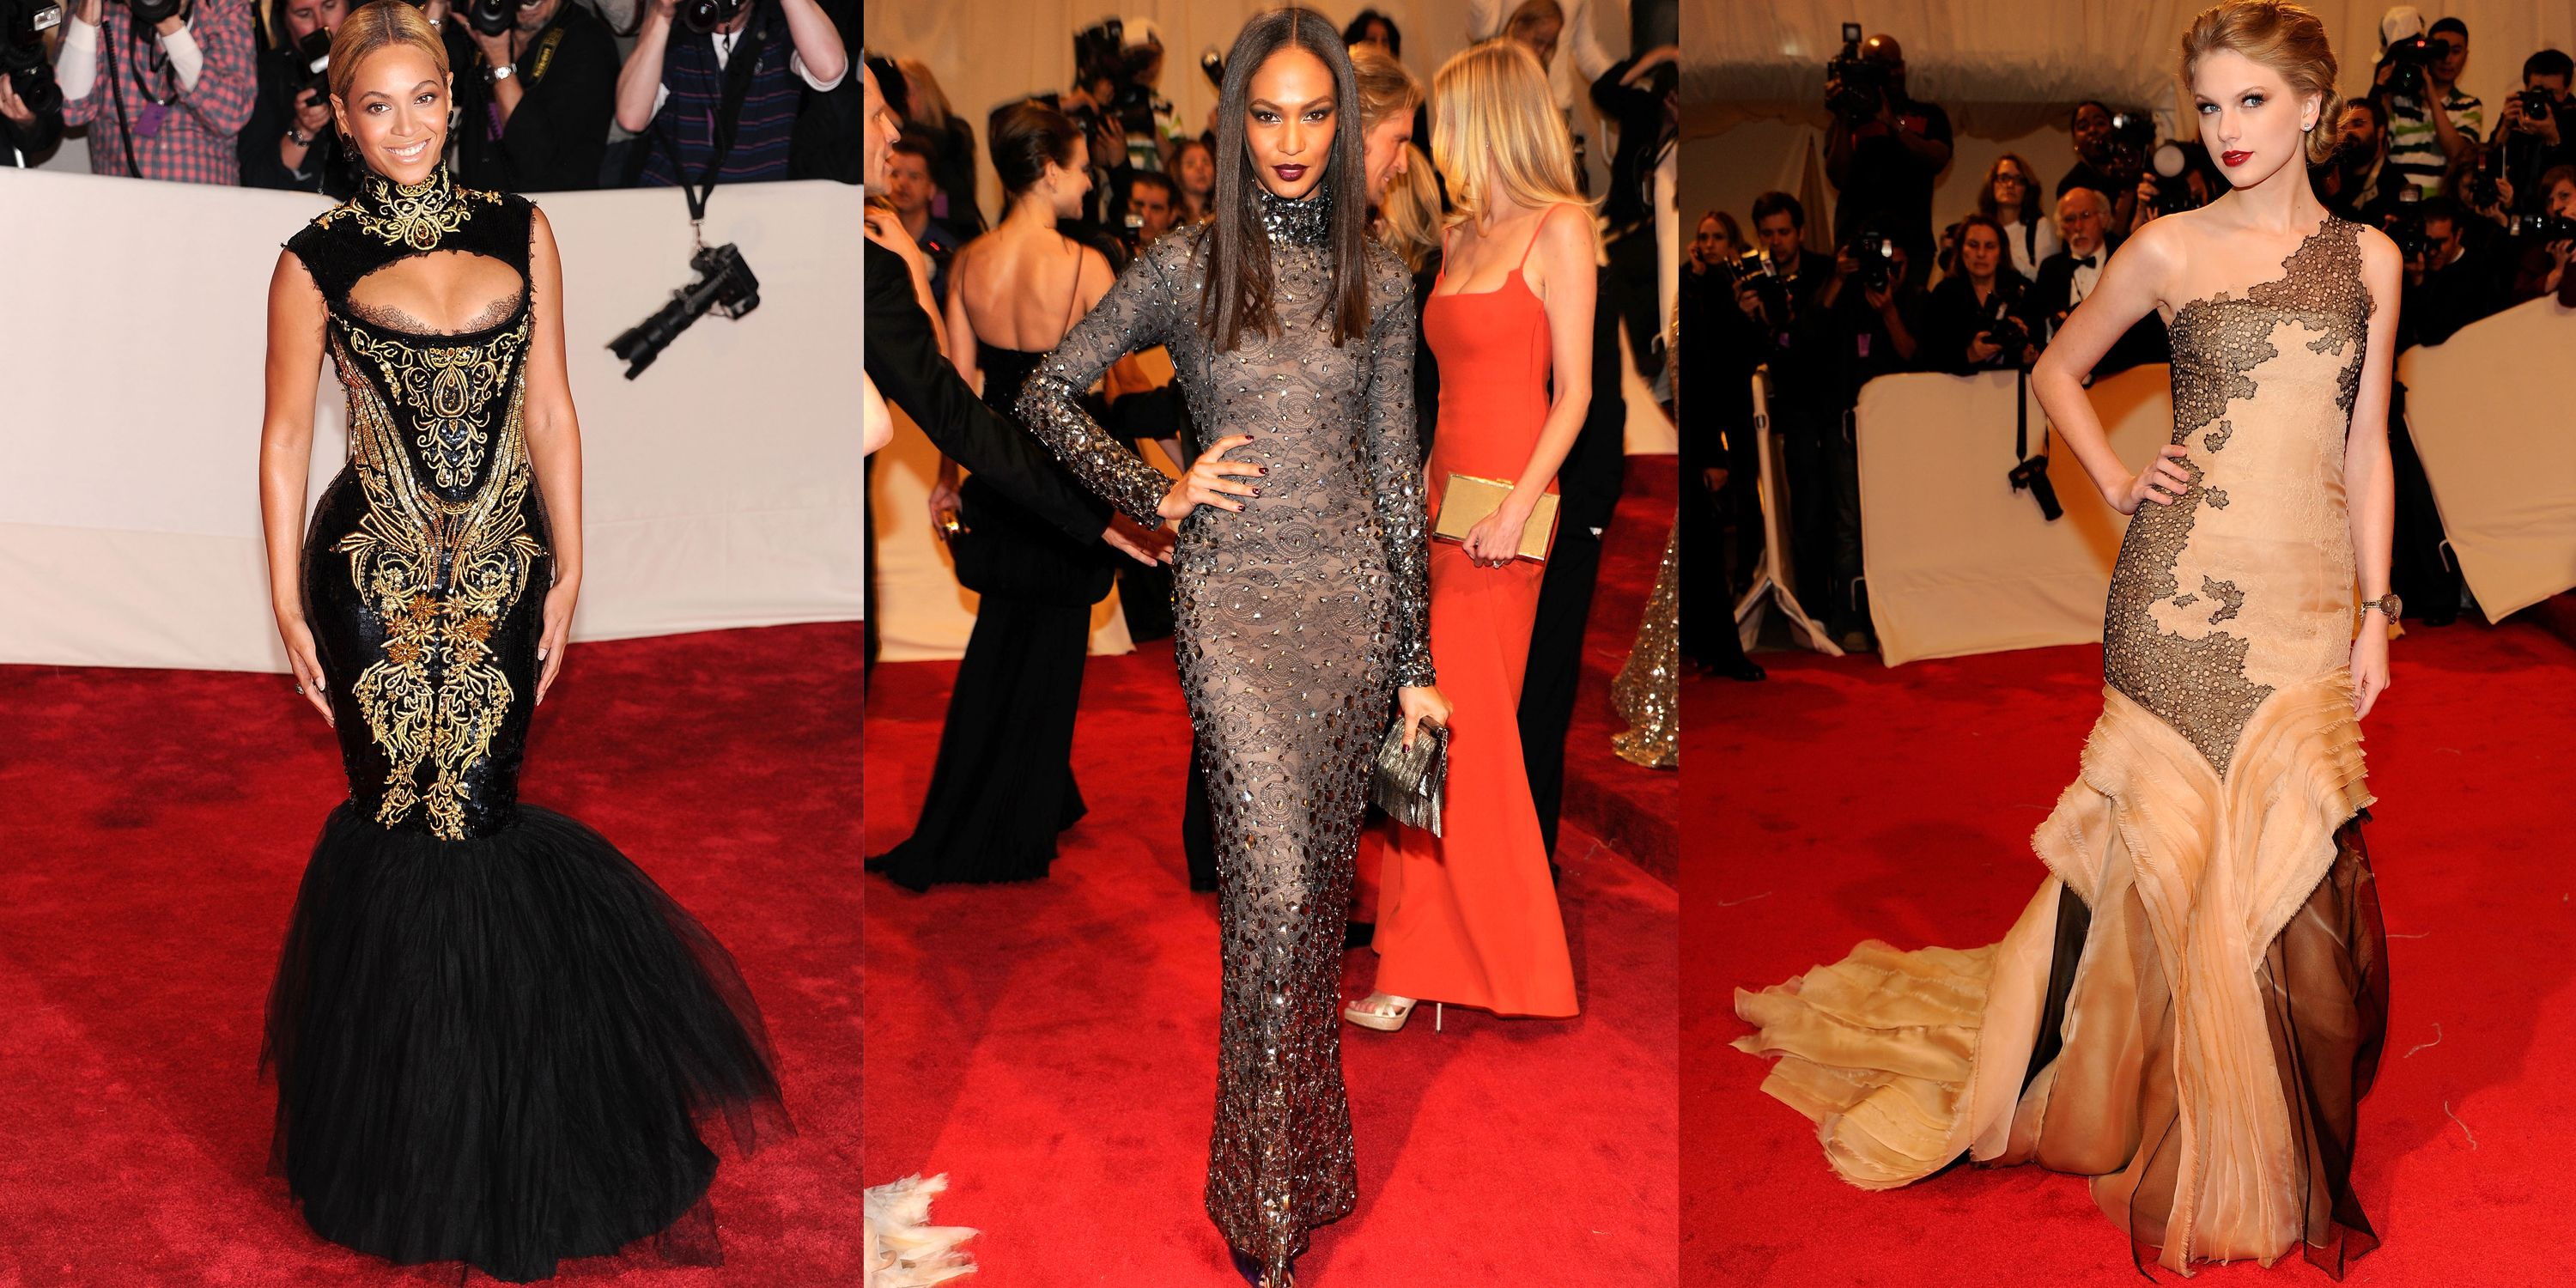 <p>In 2011, fashion's largest annual fete—The Met Gala—celebrated the late Alexander McQueen. Inspired by his baroque designs, Beyonce, Joan Smalls and Taylor Swift walked the red carpet in beautifully mysterious gowns. </p>